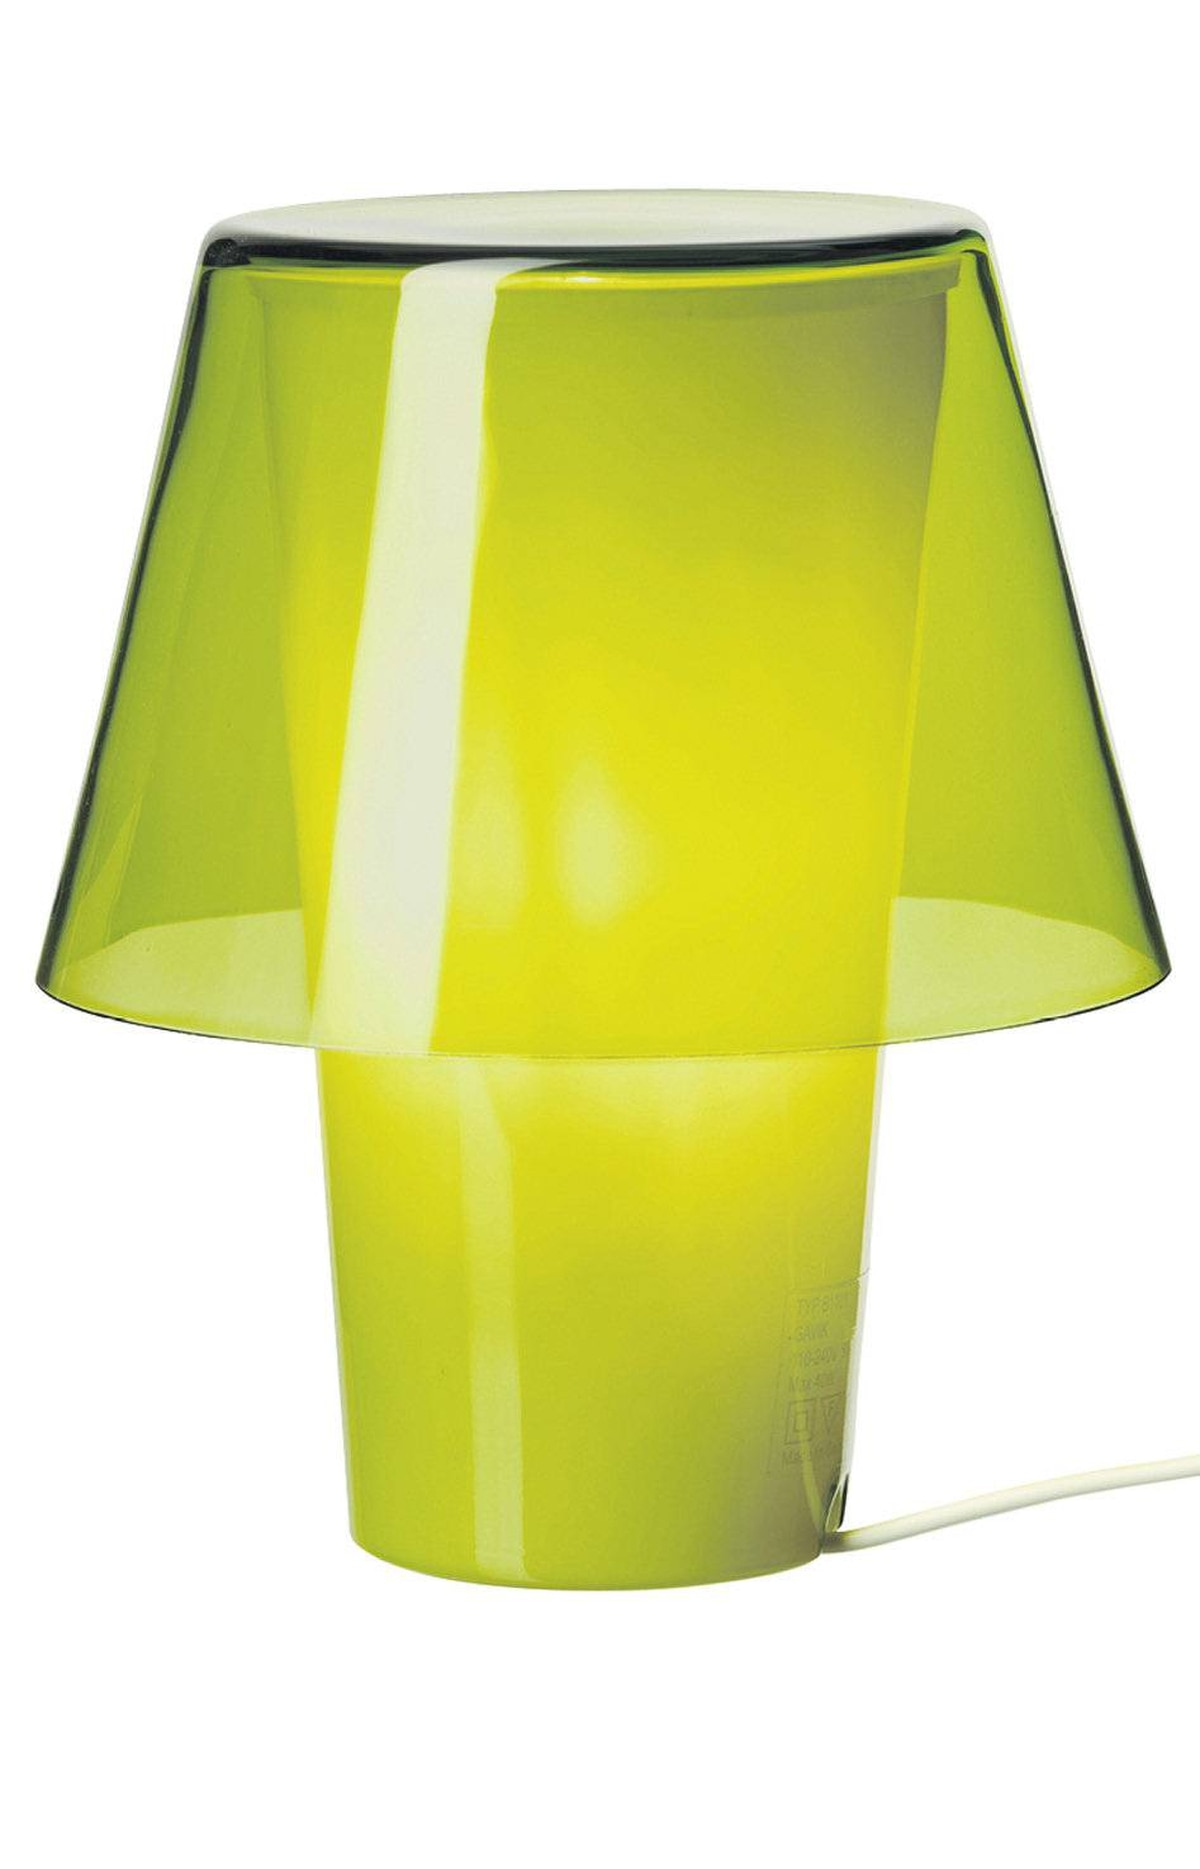 The base of this petite and colourful glass lamp folds over itself to create a charming integrated shade. Gavik table lamp in green, $15 at IKEA (www.ikea.ca).